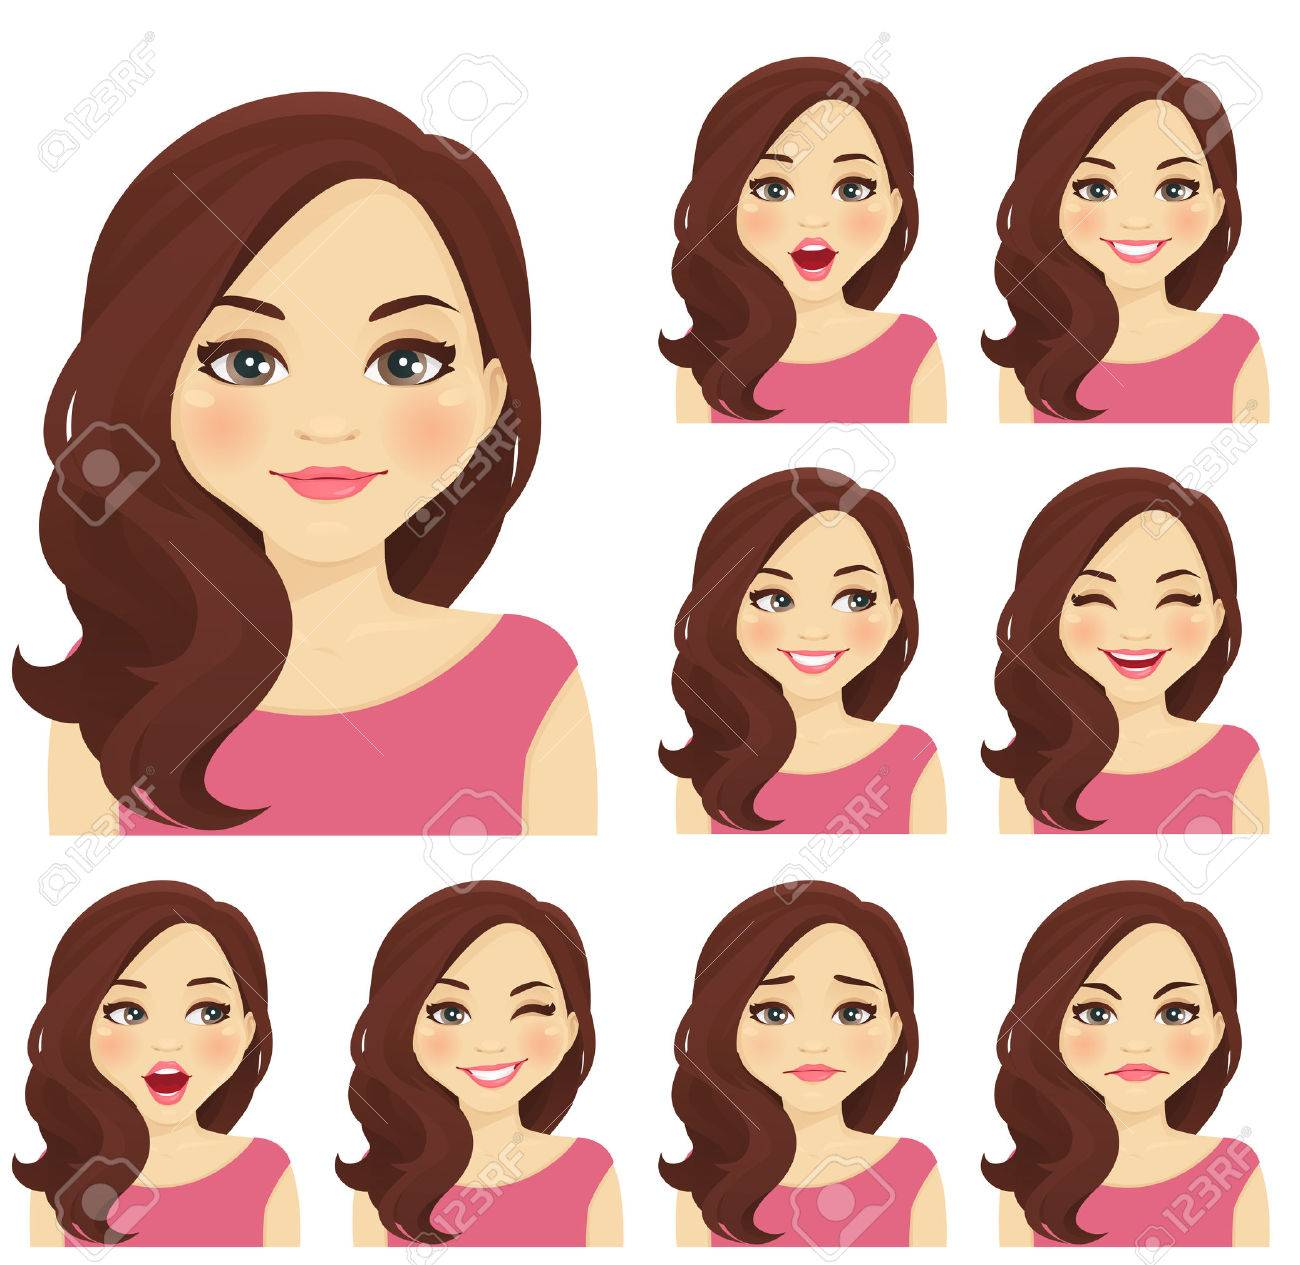 Blond woman with different facial expressions set isolated - 65795970